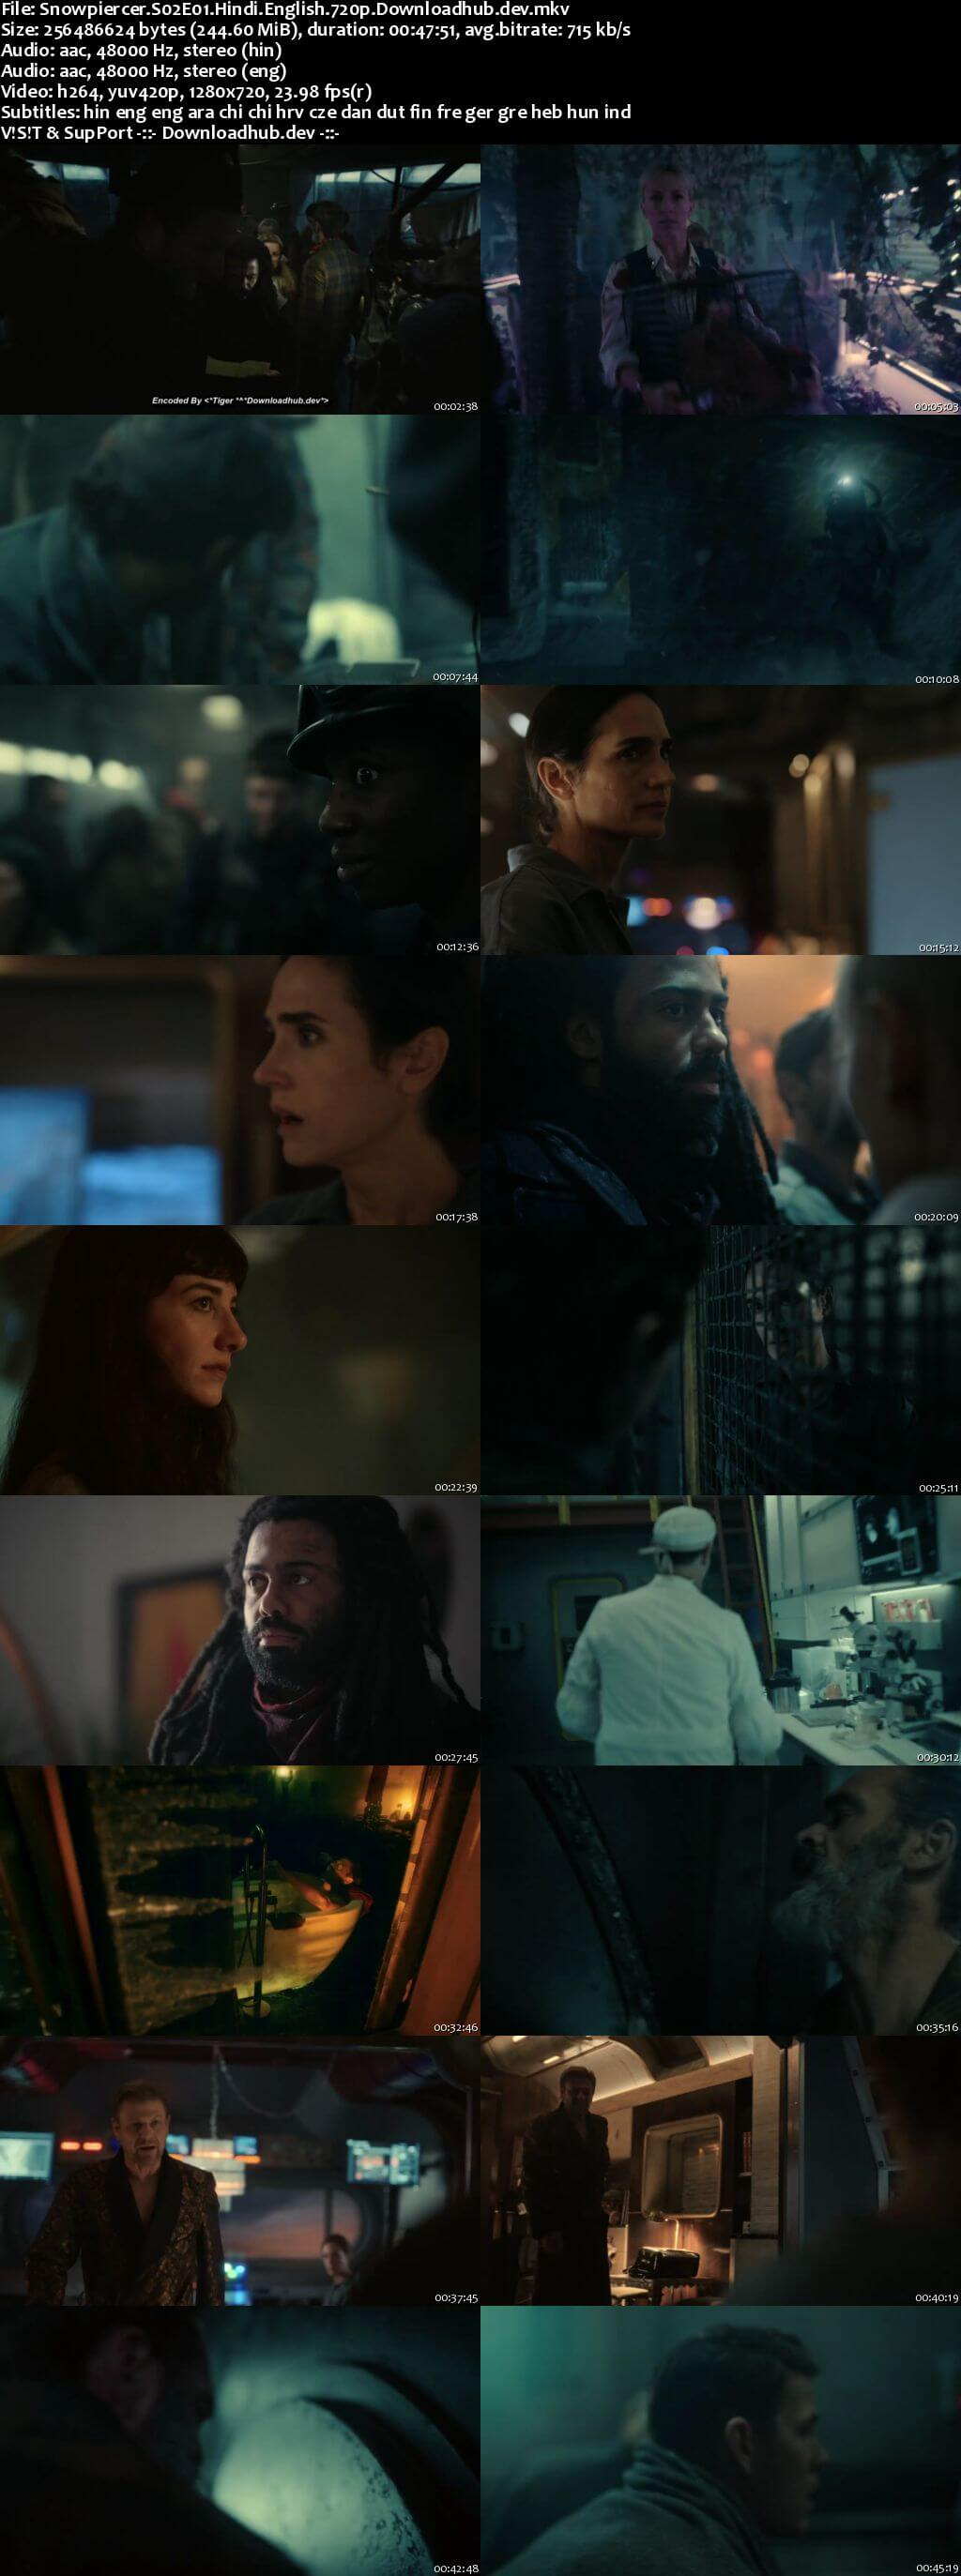 Snowpiercer 2021 S02 Complete Hindi Dual Audio 720p Web-DL MSubs